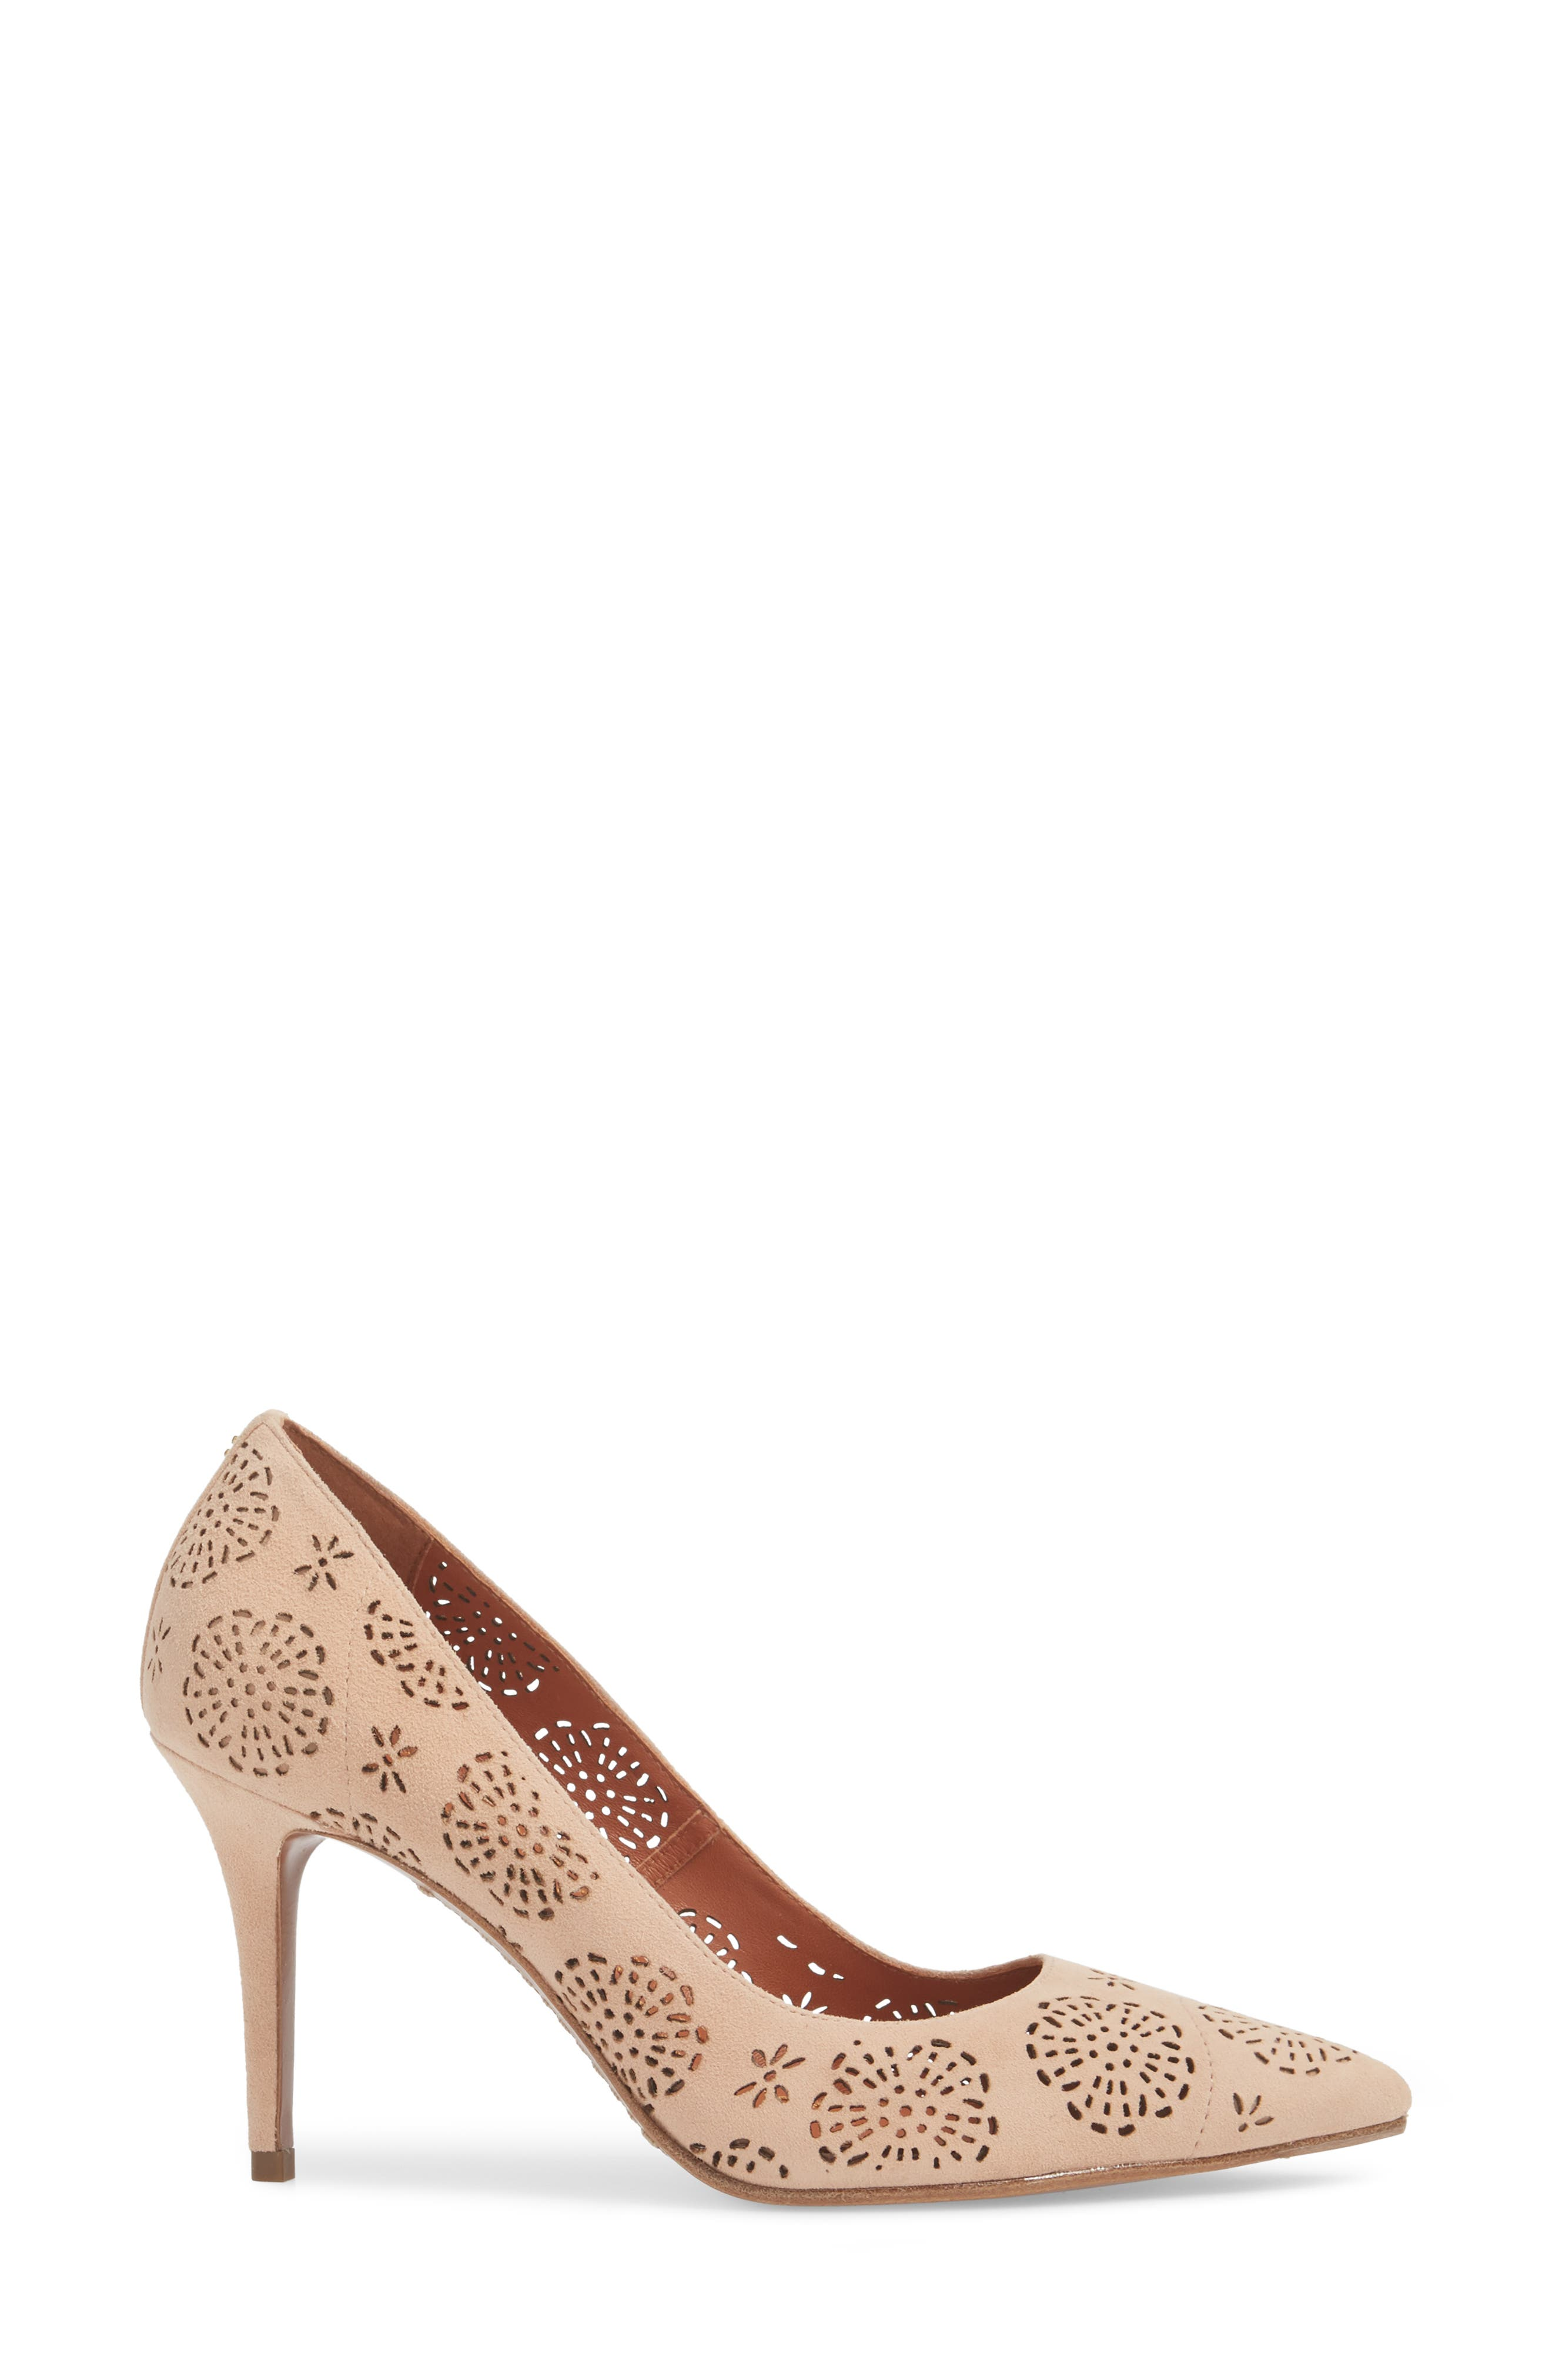 Waverly Tea Rose Perforated Pump,                             Alternate thumbnail 3, color,                             Beachwood Leather